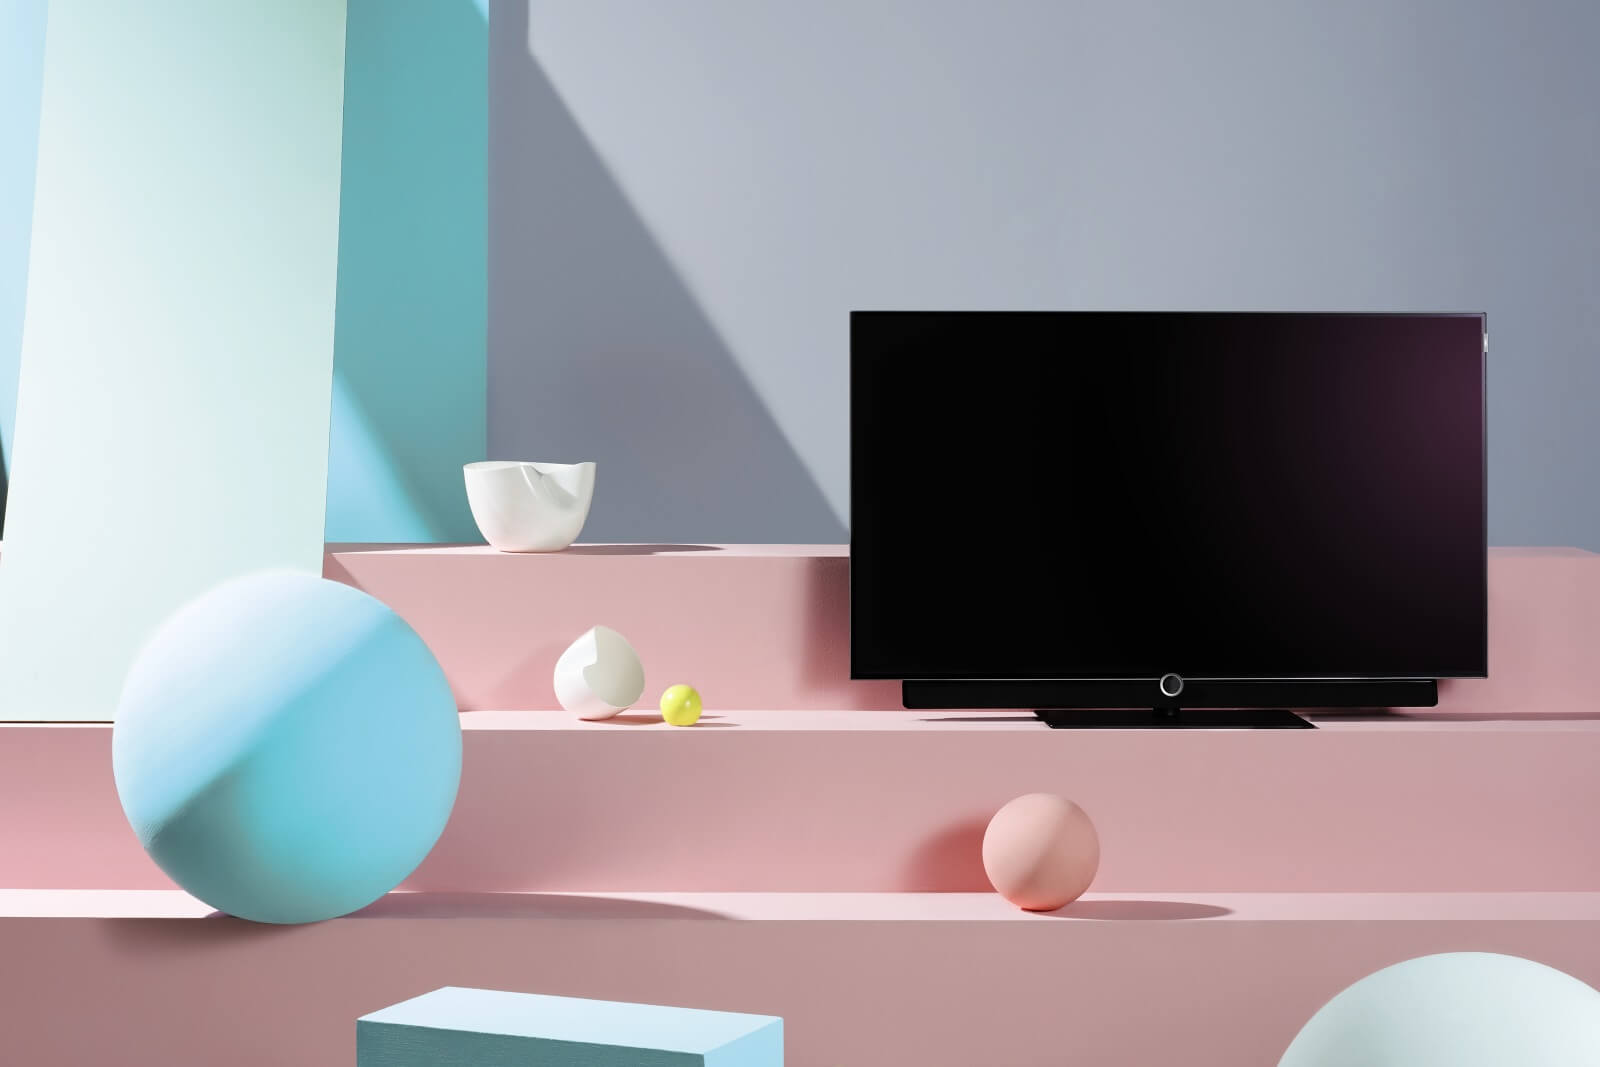 Bild 4 by Löwe - OLED TV in 55 inch